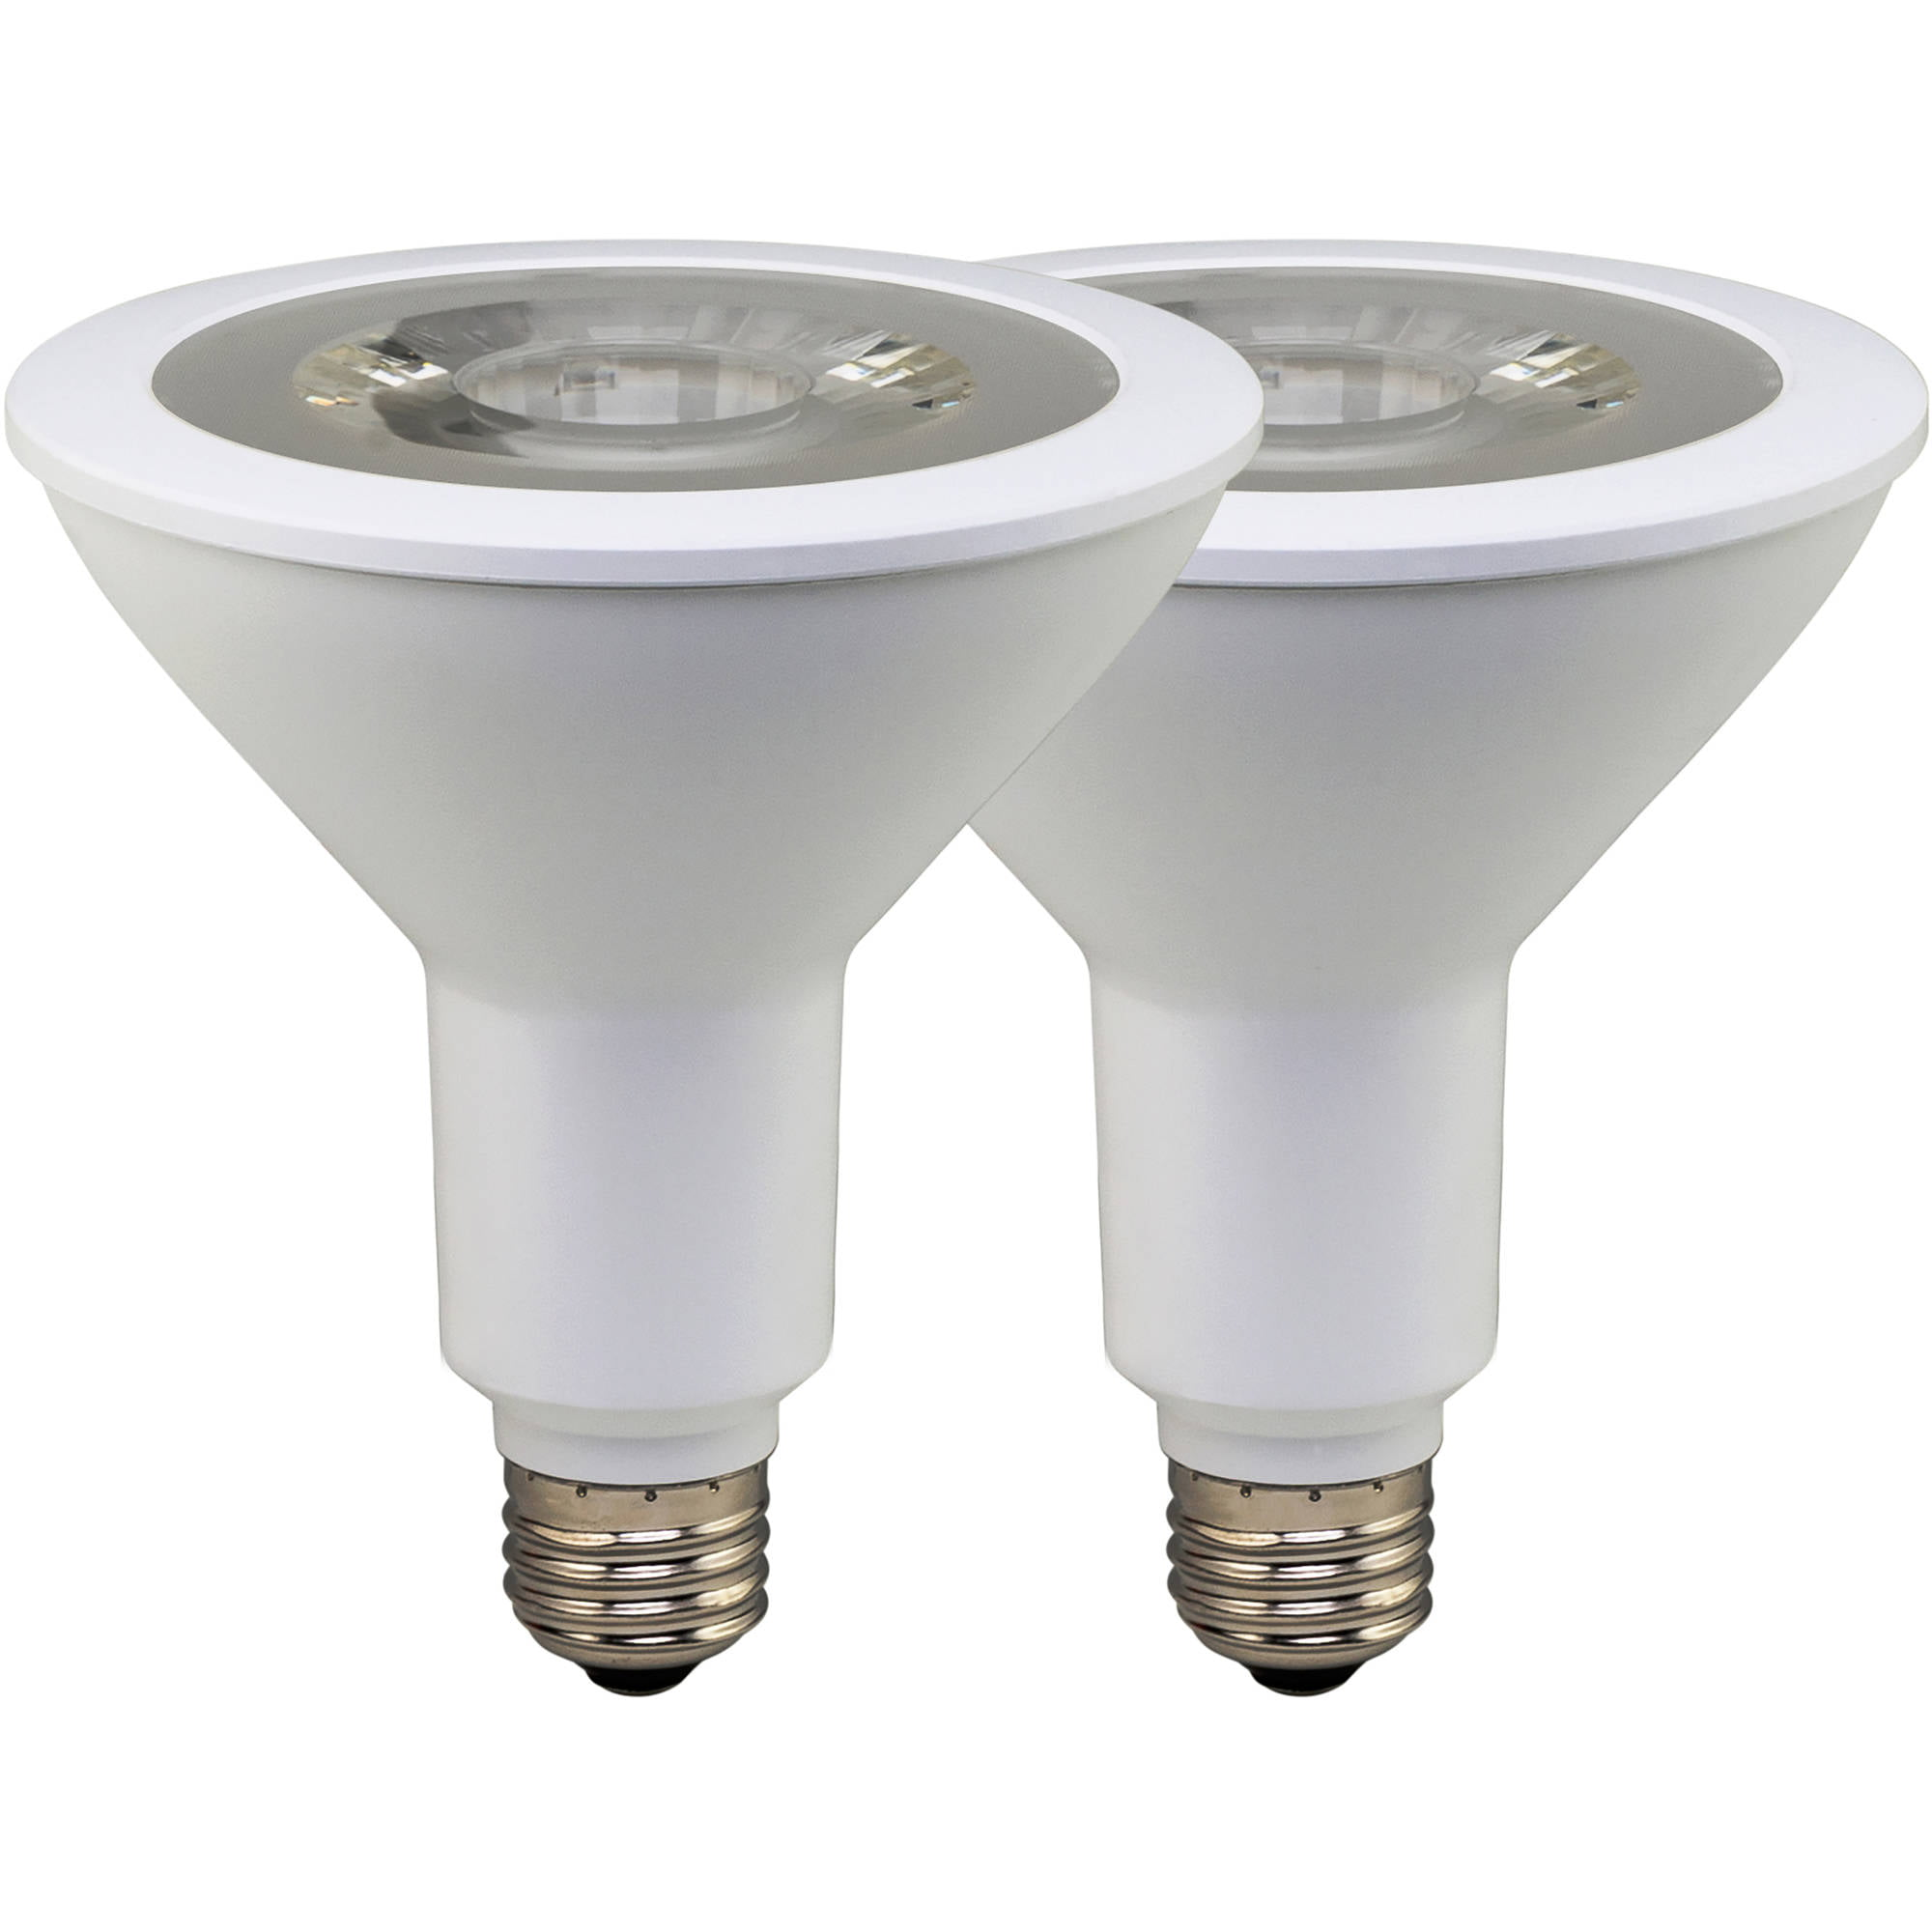 bulb great fluorescent light skookum top lamp lighting heat value outdoor finesse color led bulbs walmart changing